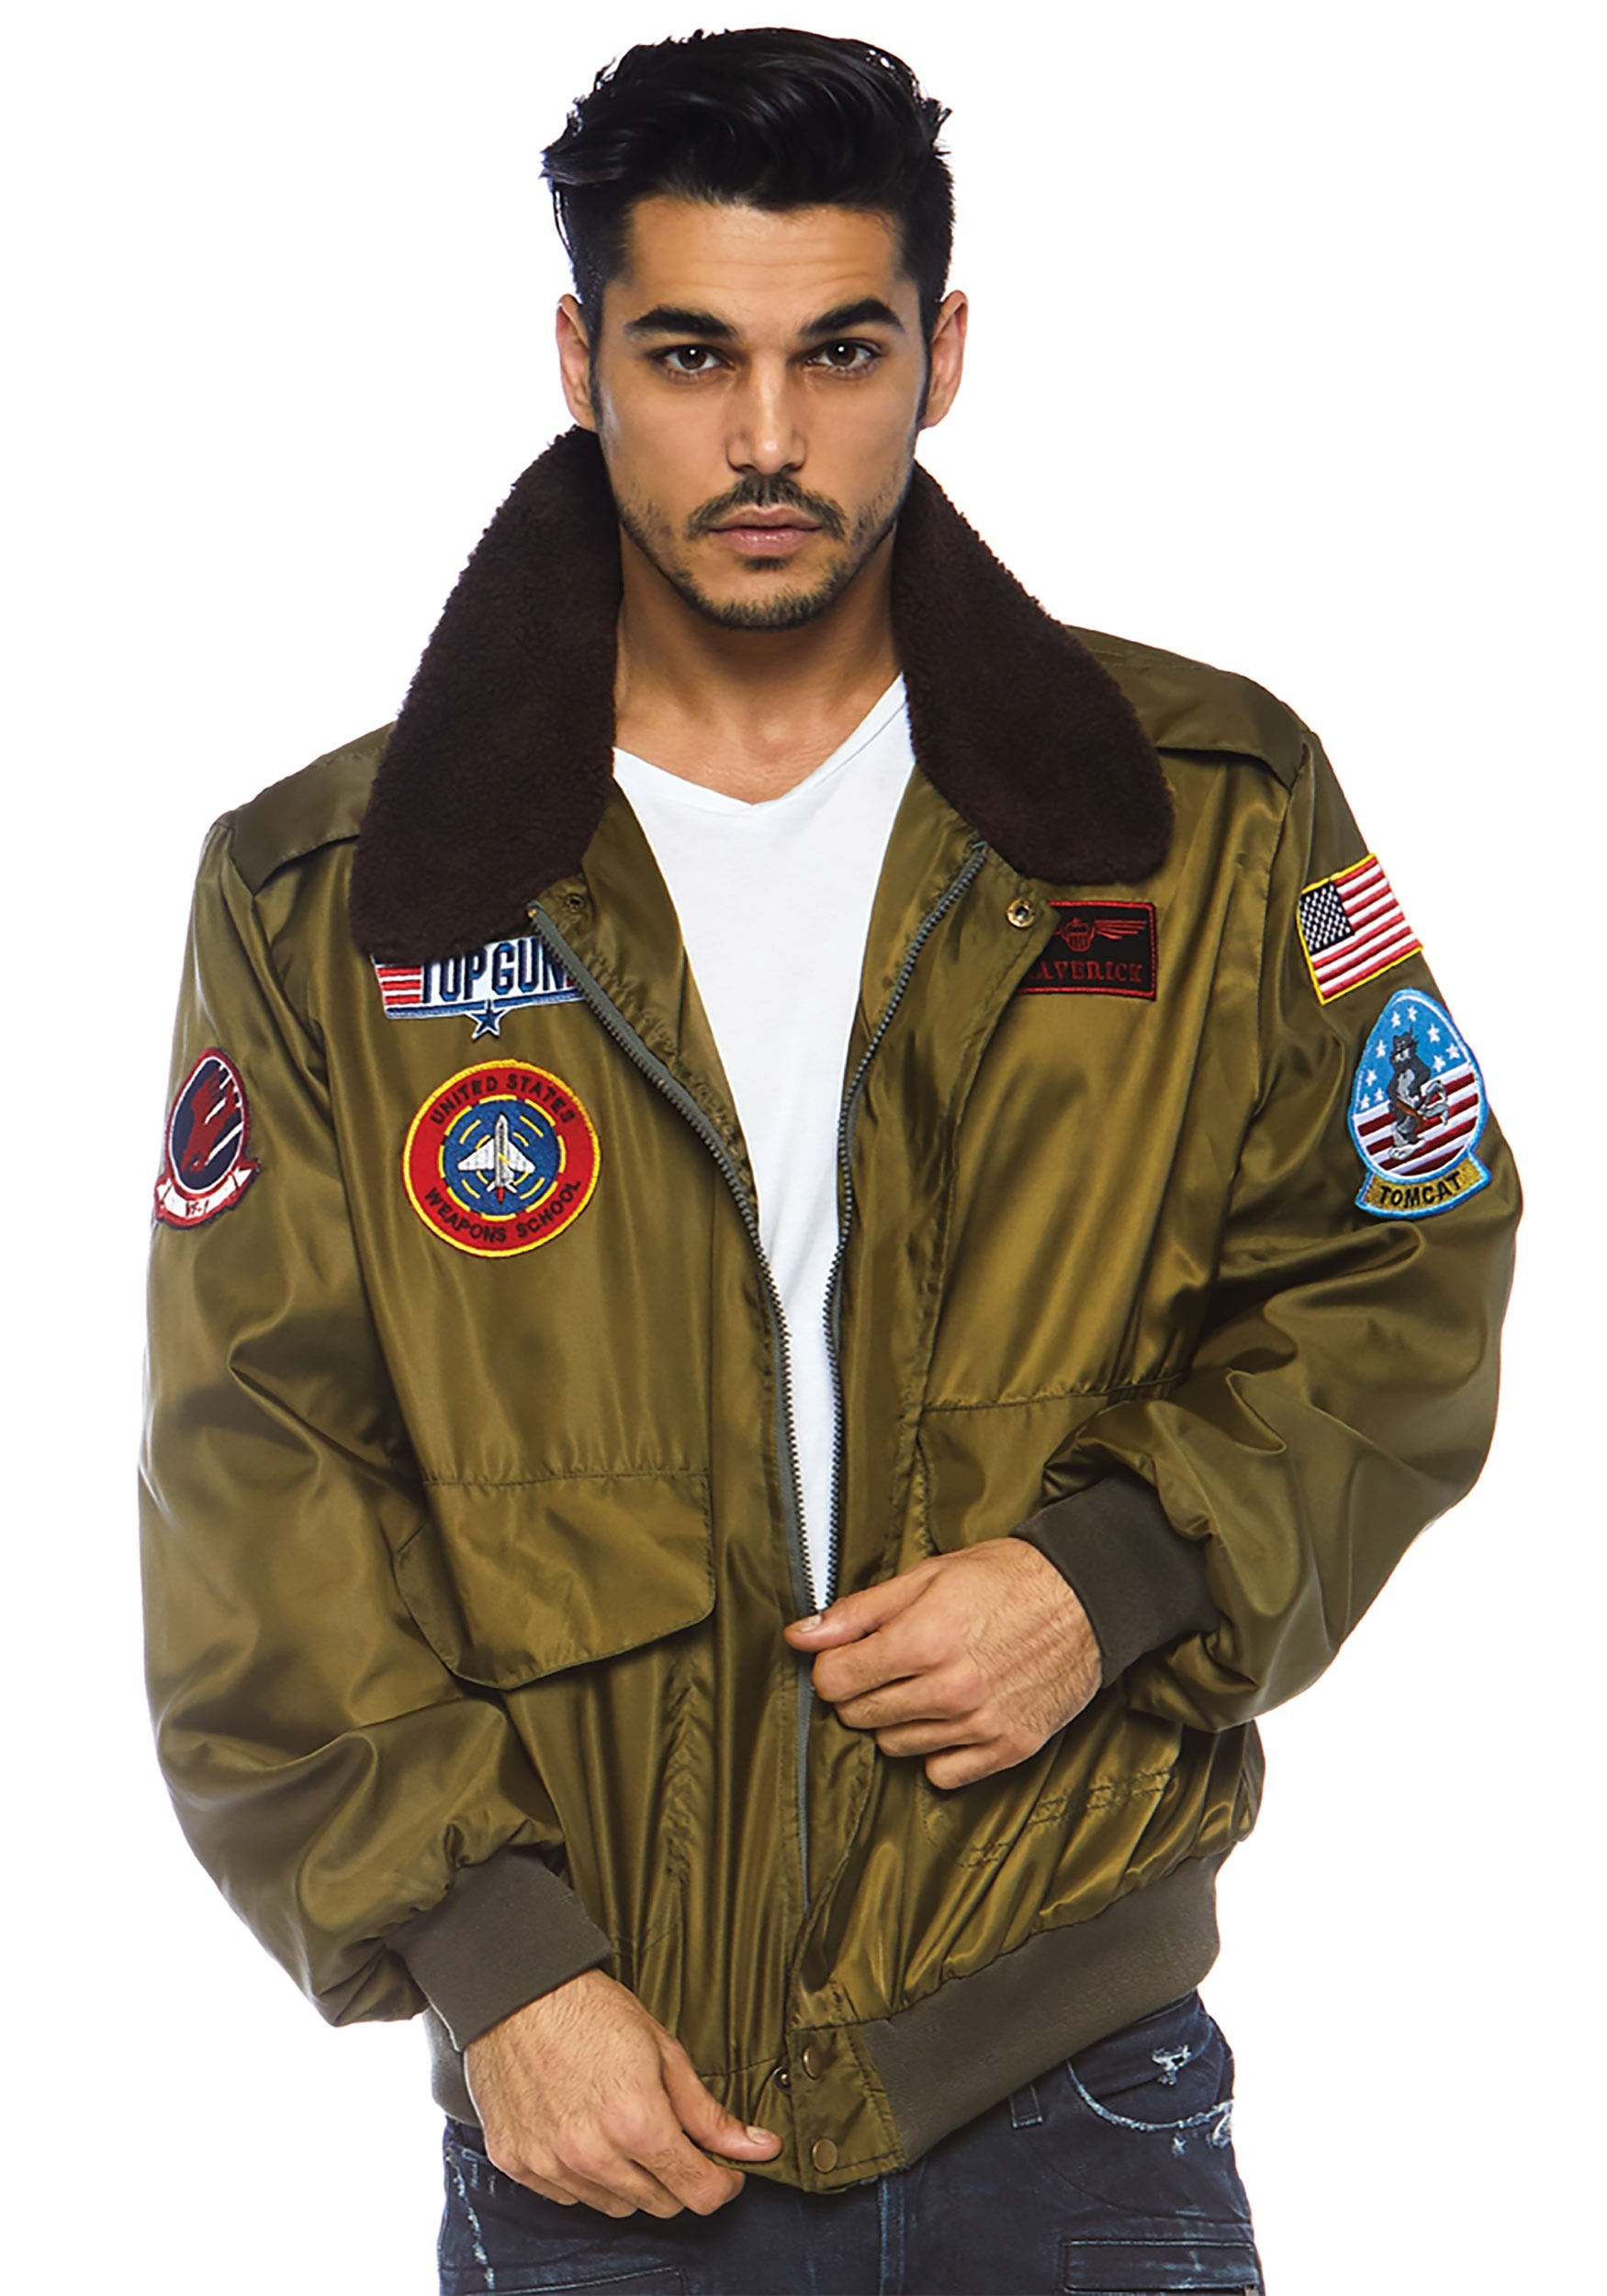 7a447b103 Top Gun Men's Nylon Bomber Jacket Costume